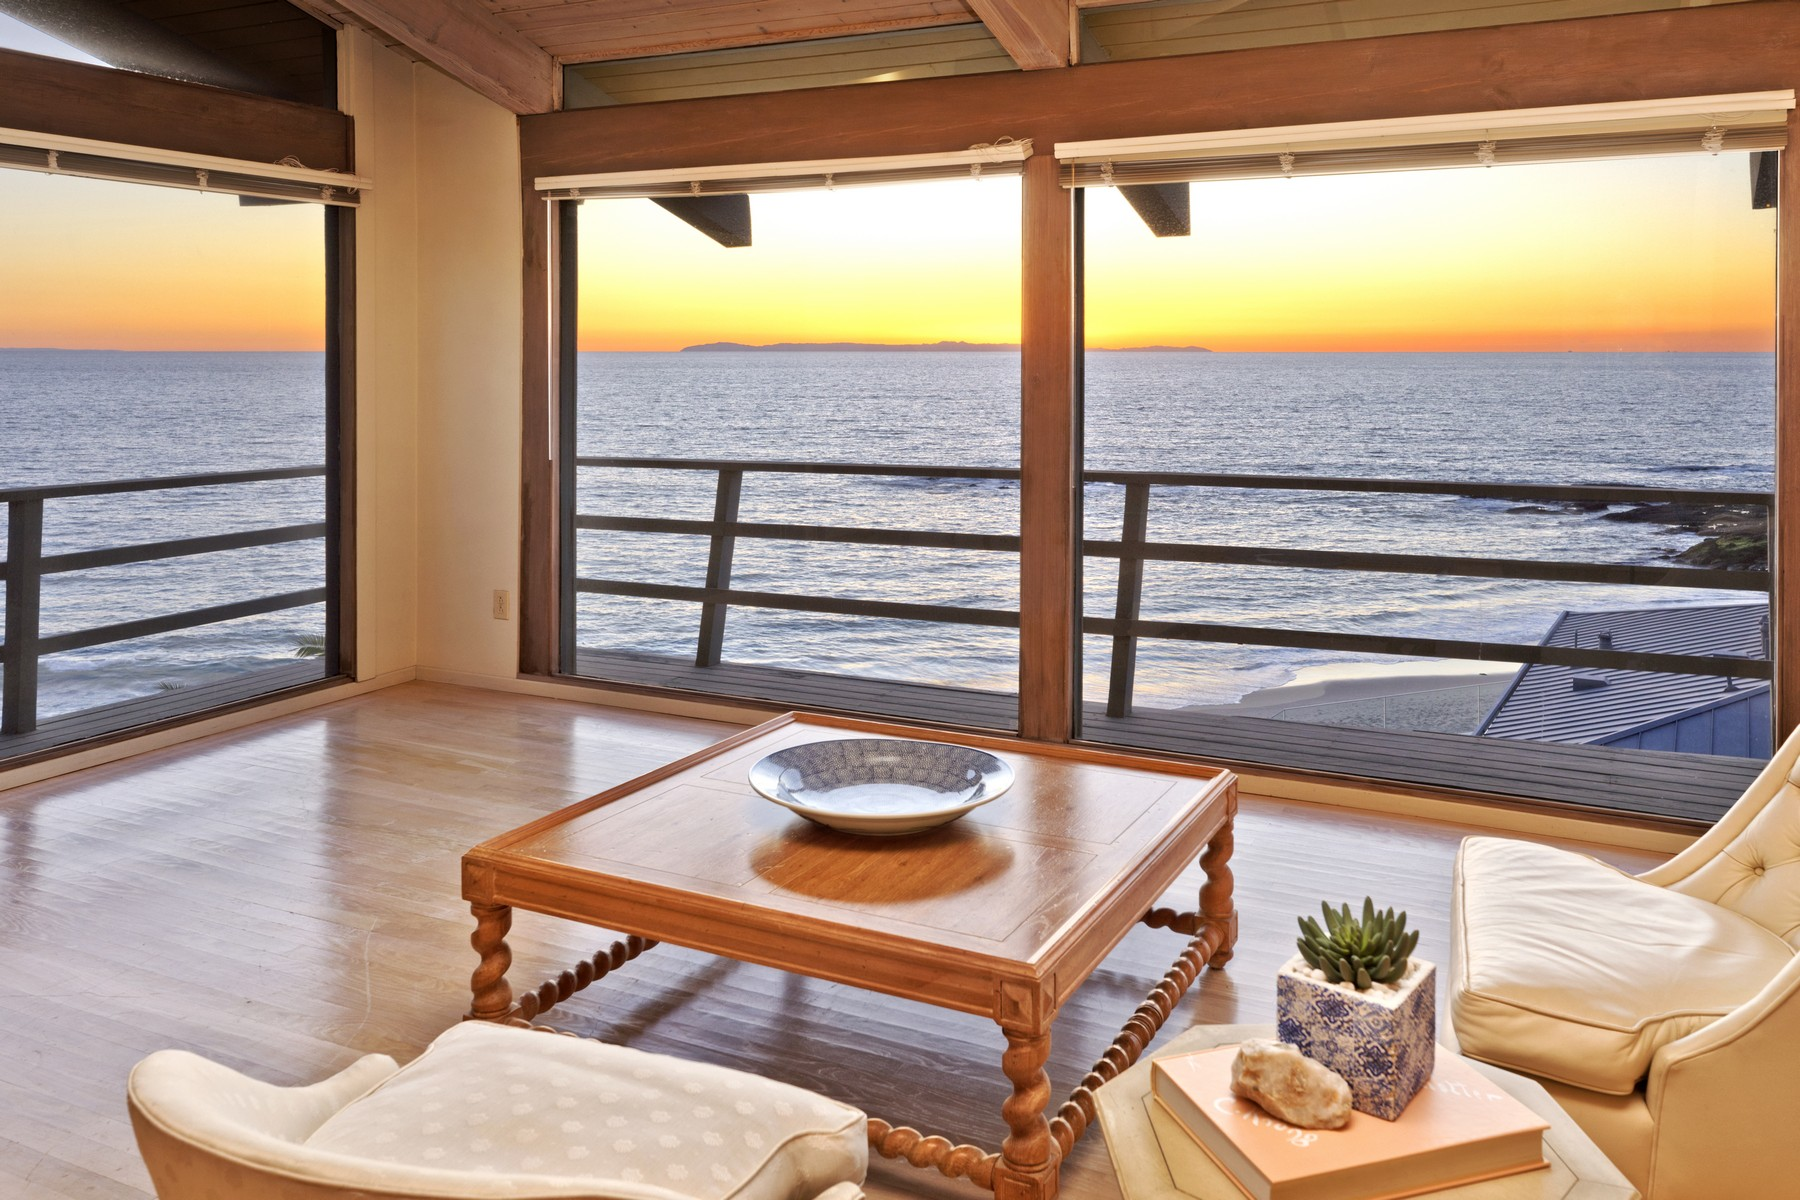 Single Family Home for Sale at 12 Lagunita Drive Laguna Beach, California, 92651 United States